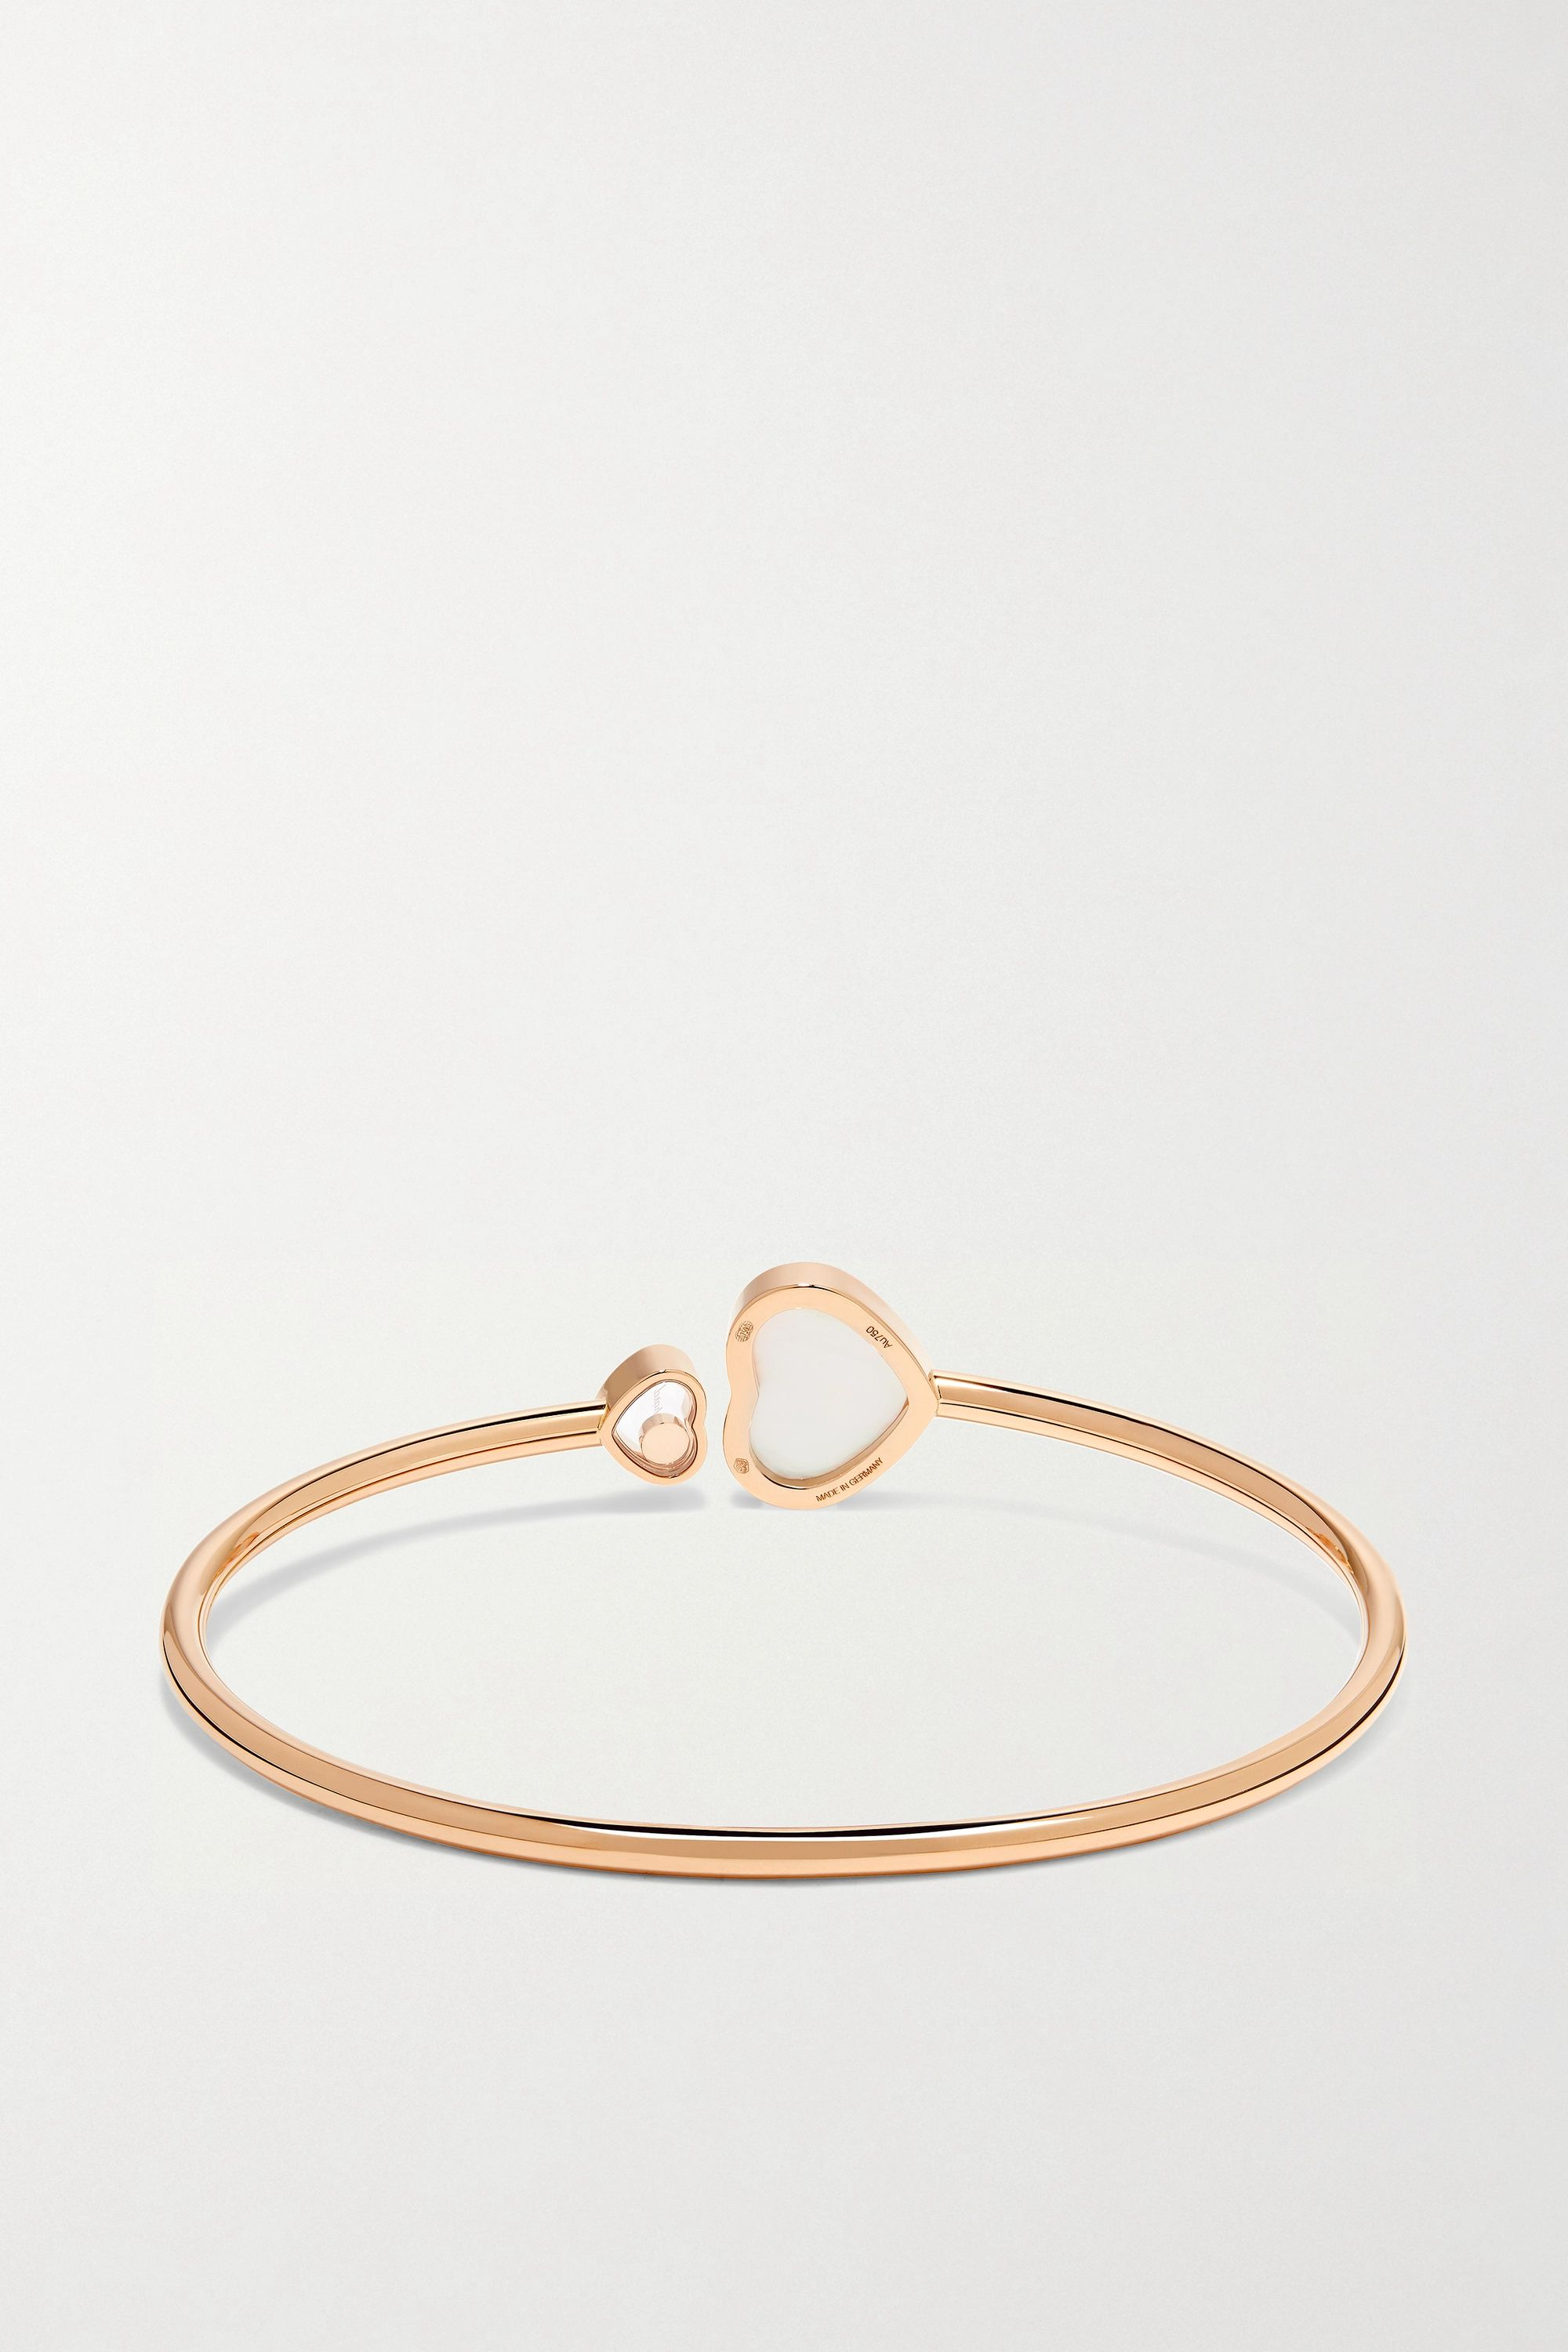 Chopard Happy Hearts 18-karat rose gold, diamond and mother-of-pearl cuff